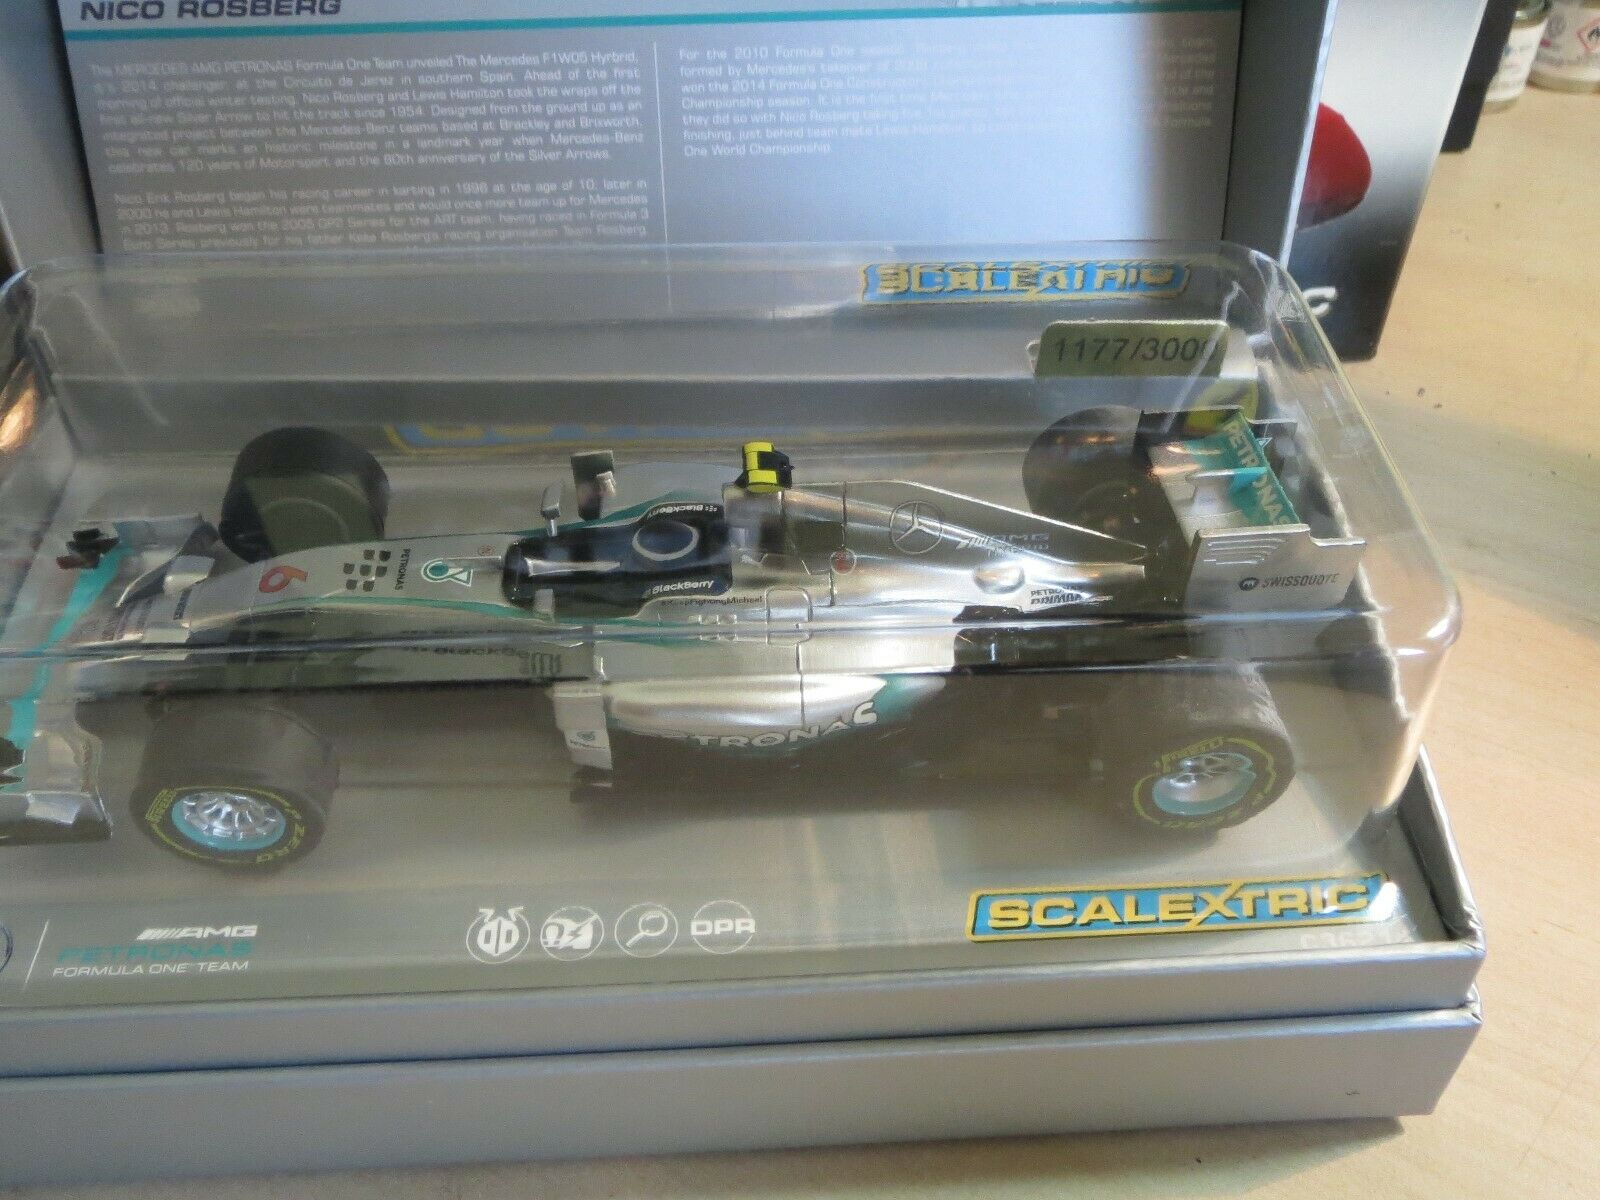 Scalextric c3621A BRAND NEW LIMITED EDITION 1177 3000 NICO ROSBERG SUPERB CAR